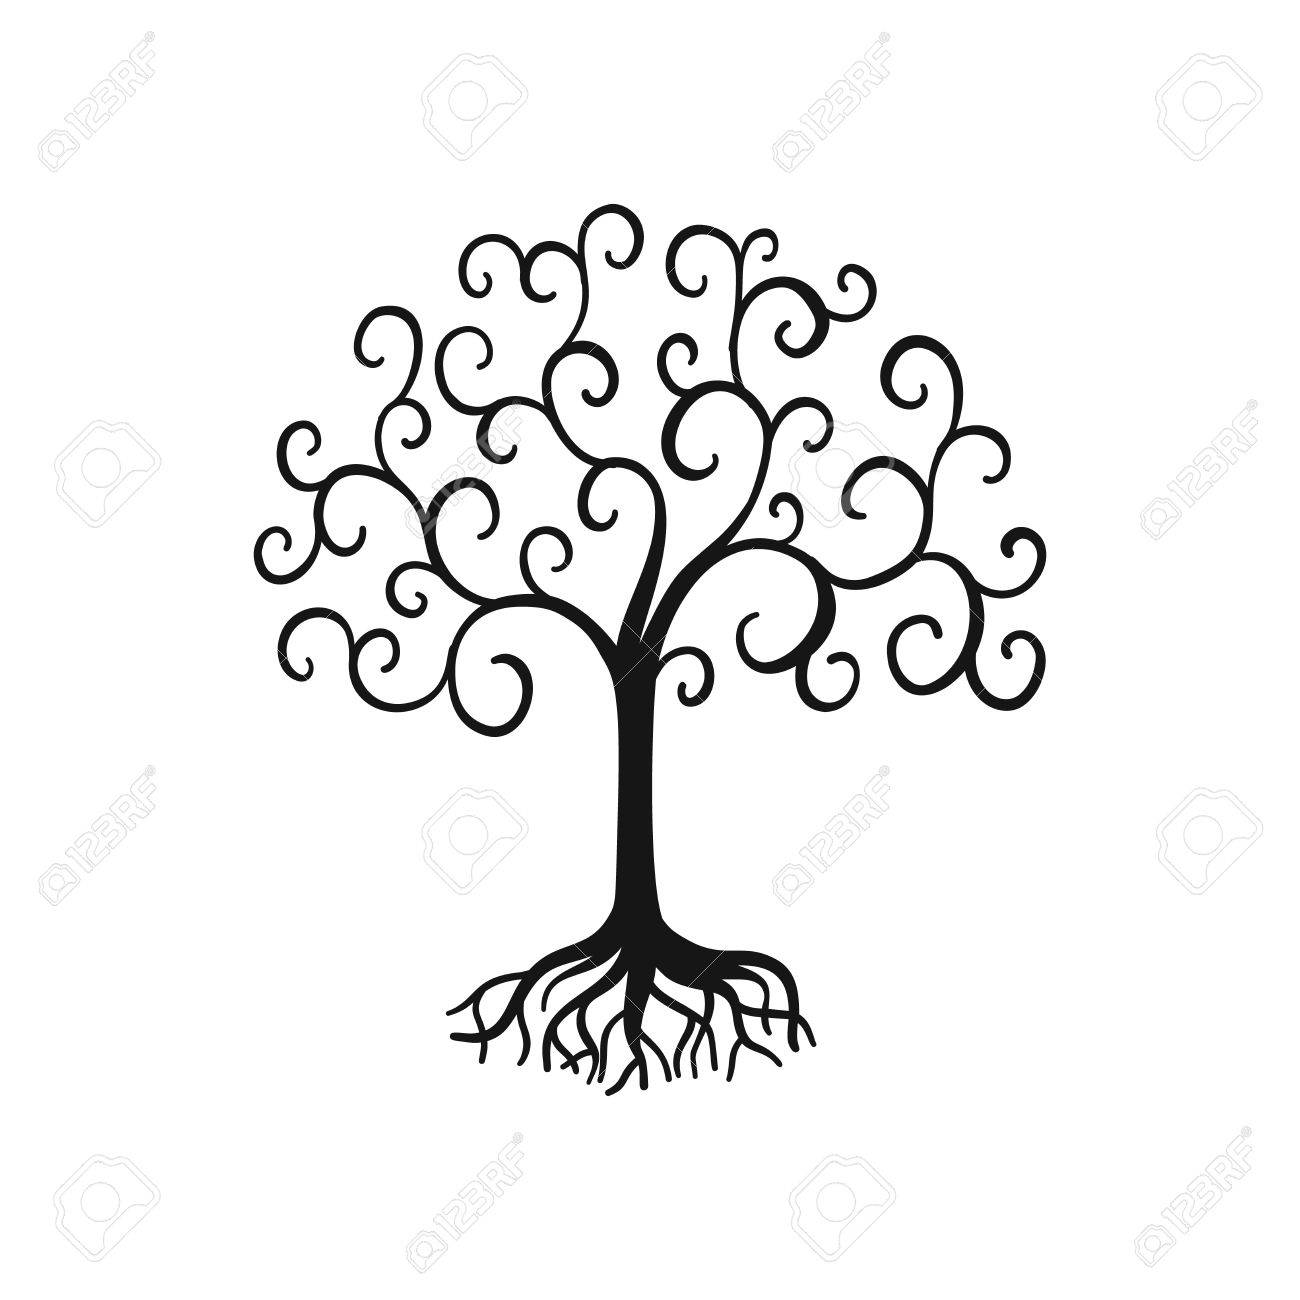 vector tree of life royalty free cliparts vectors and stock rh 123rf com tree of life vector download tree of life vector equilibrium vortex